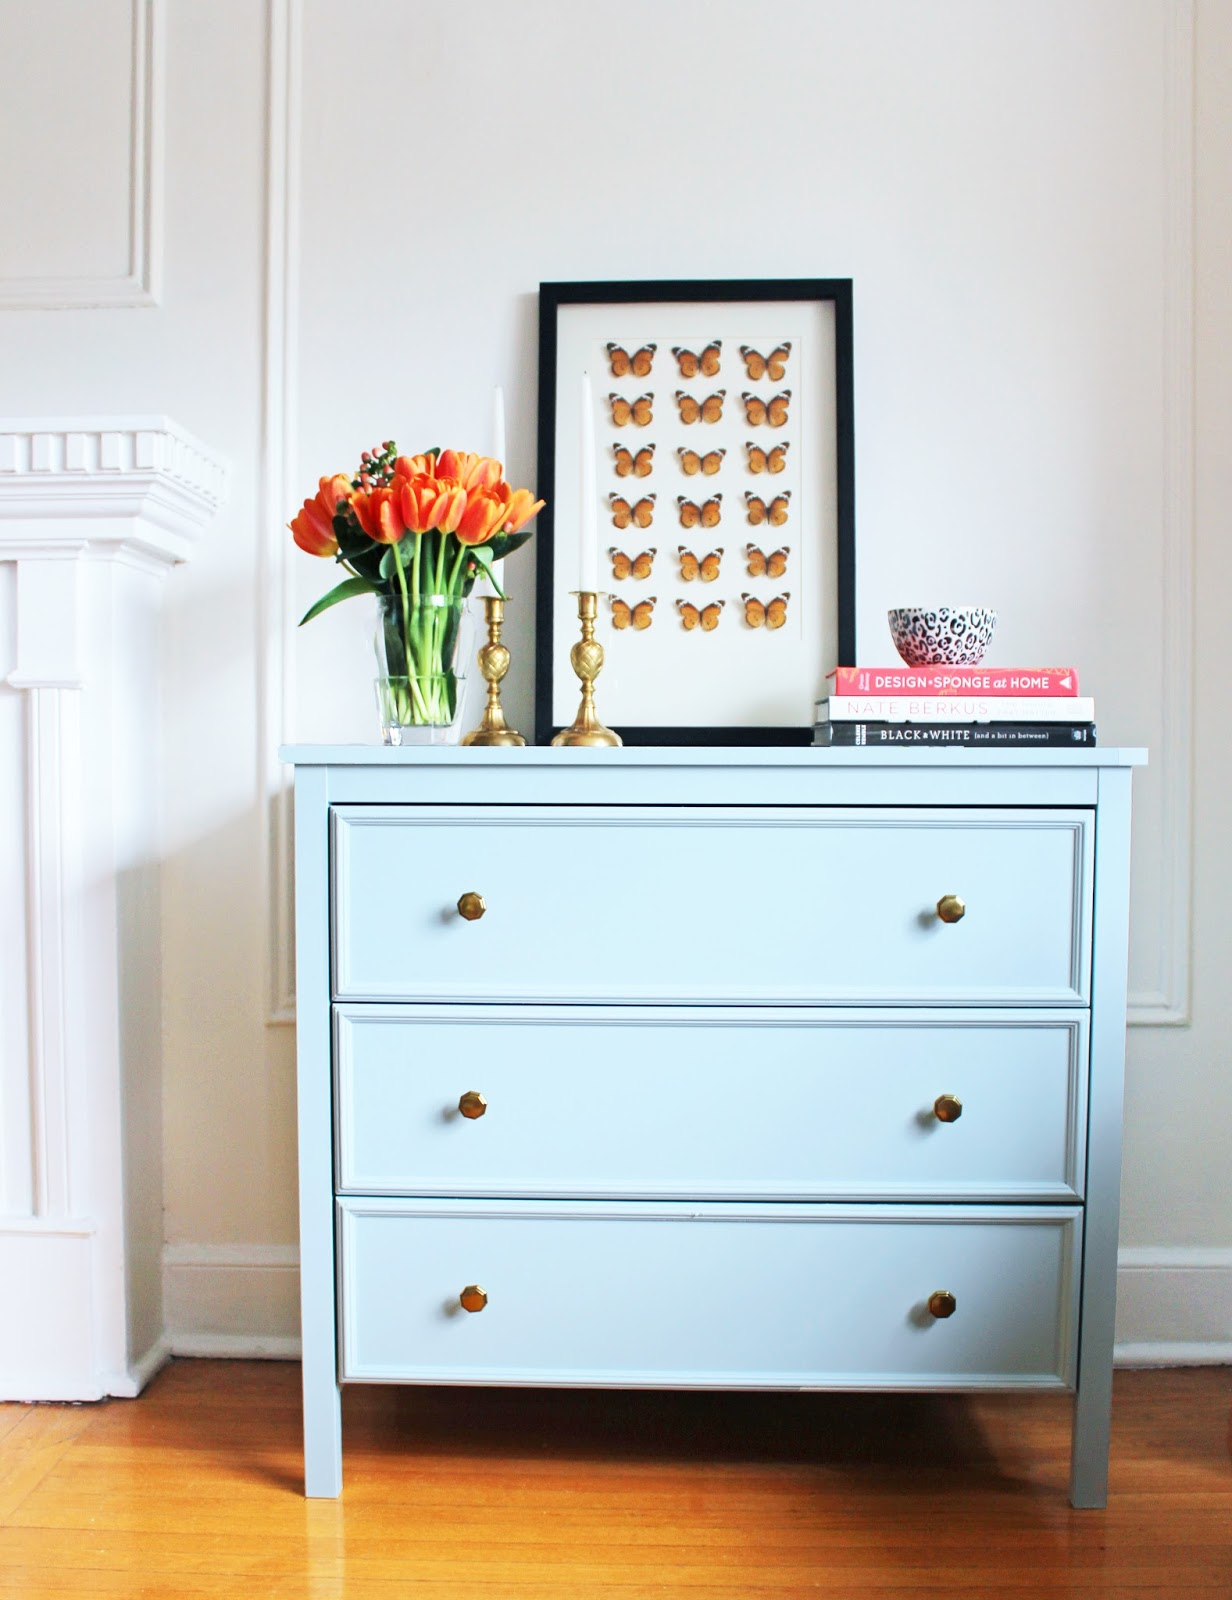 Tiffany leigh interior design diy ikea hack chest of drawers for Bedroom dressers ikea